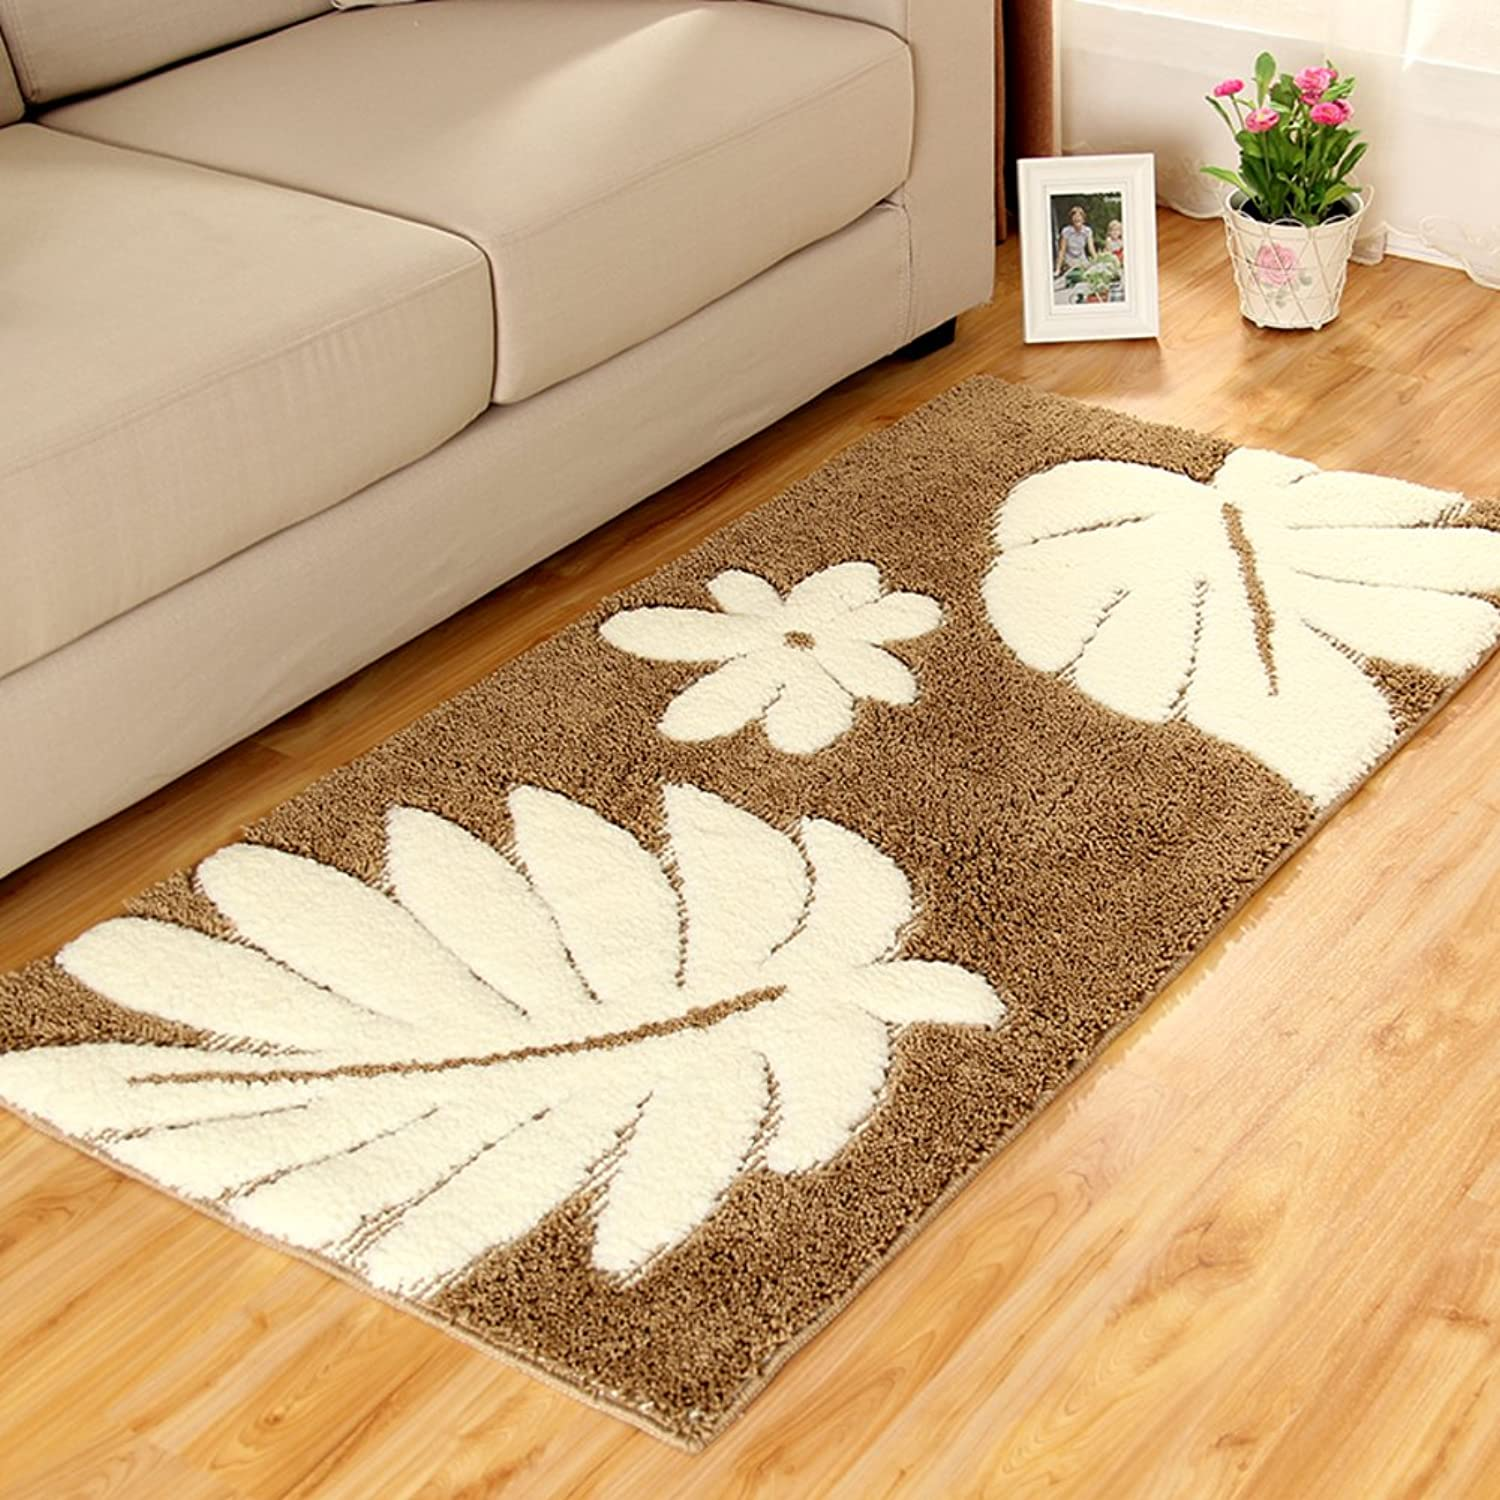 Rug Footcloth Floor Door Ground mat Carpet Tiles for Side or Tea Table Strong Water Dirt Absorption pad-B 28  43  0.6inch(70  110  1.5cm)